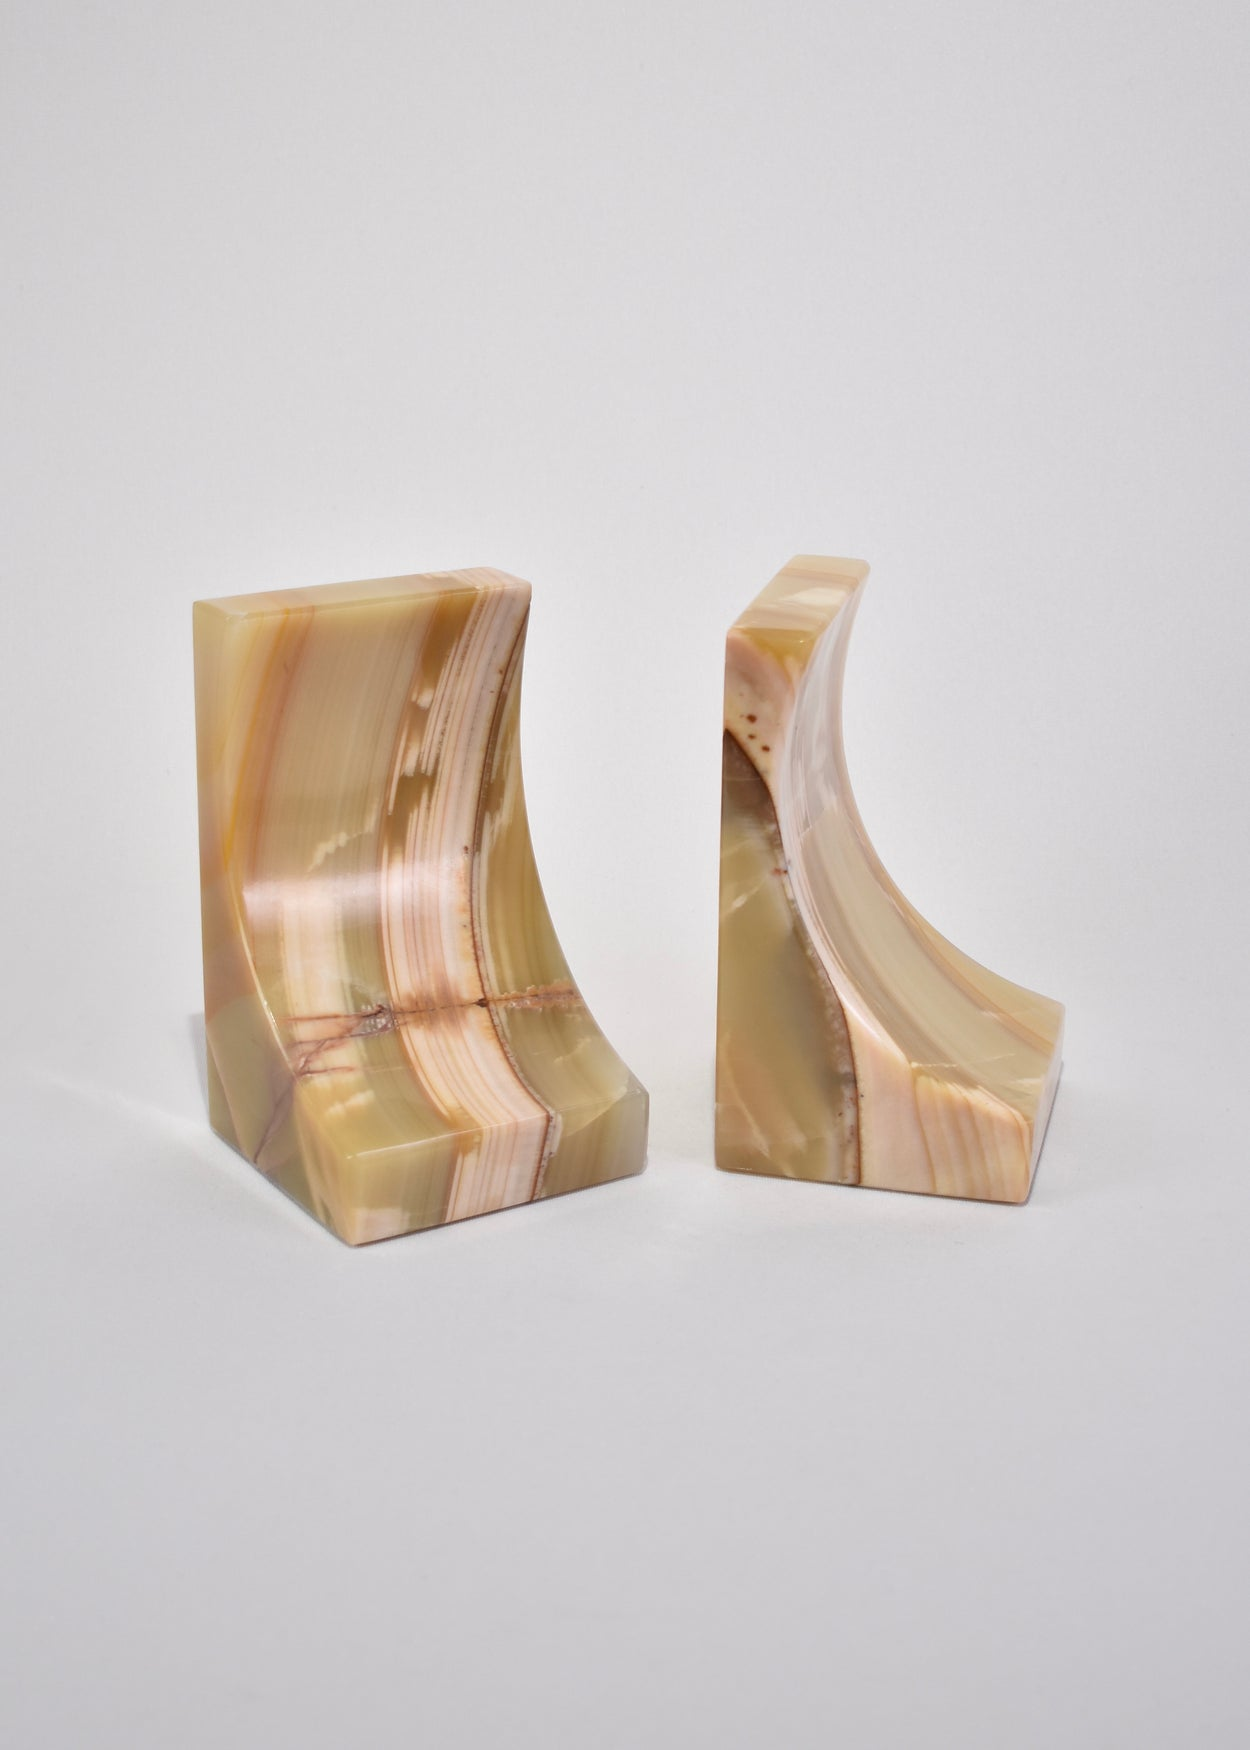 Curved Onyx Bookends